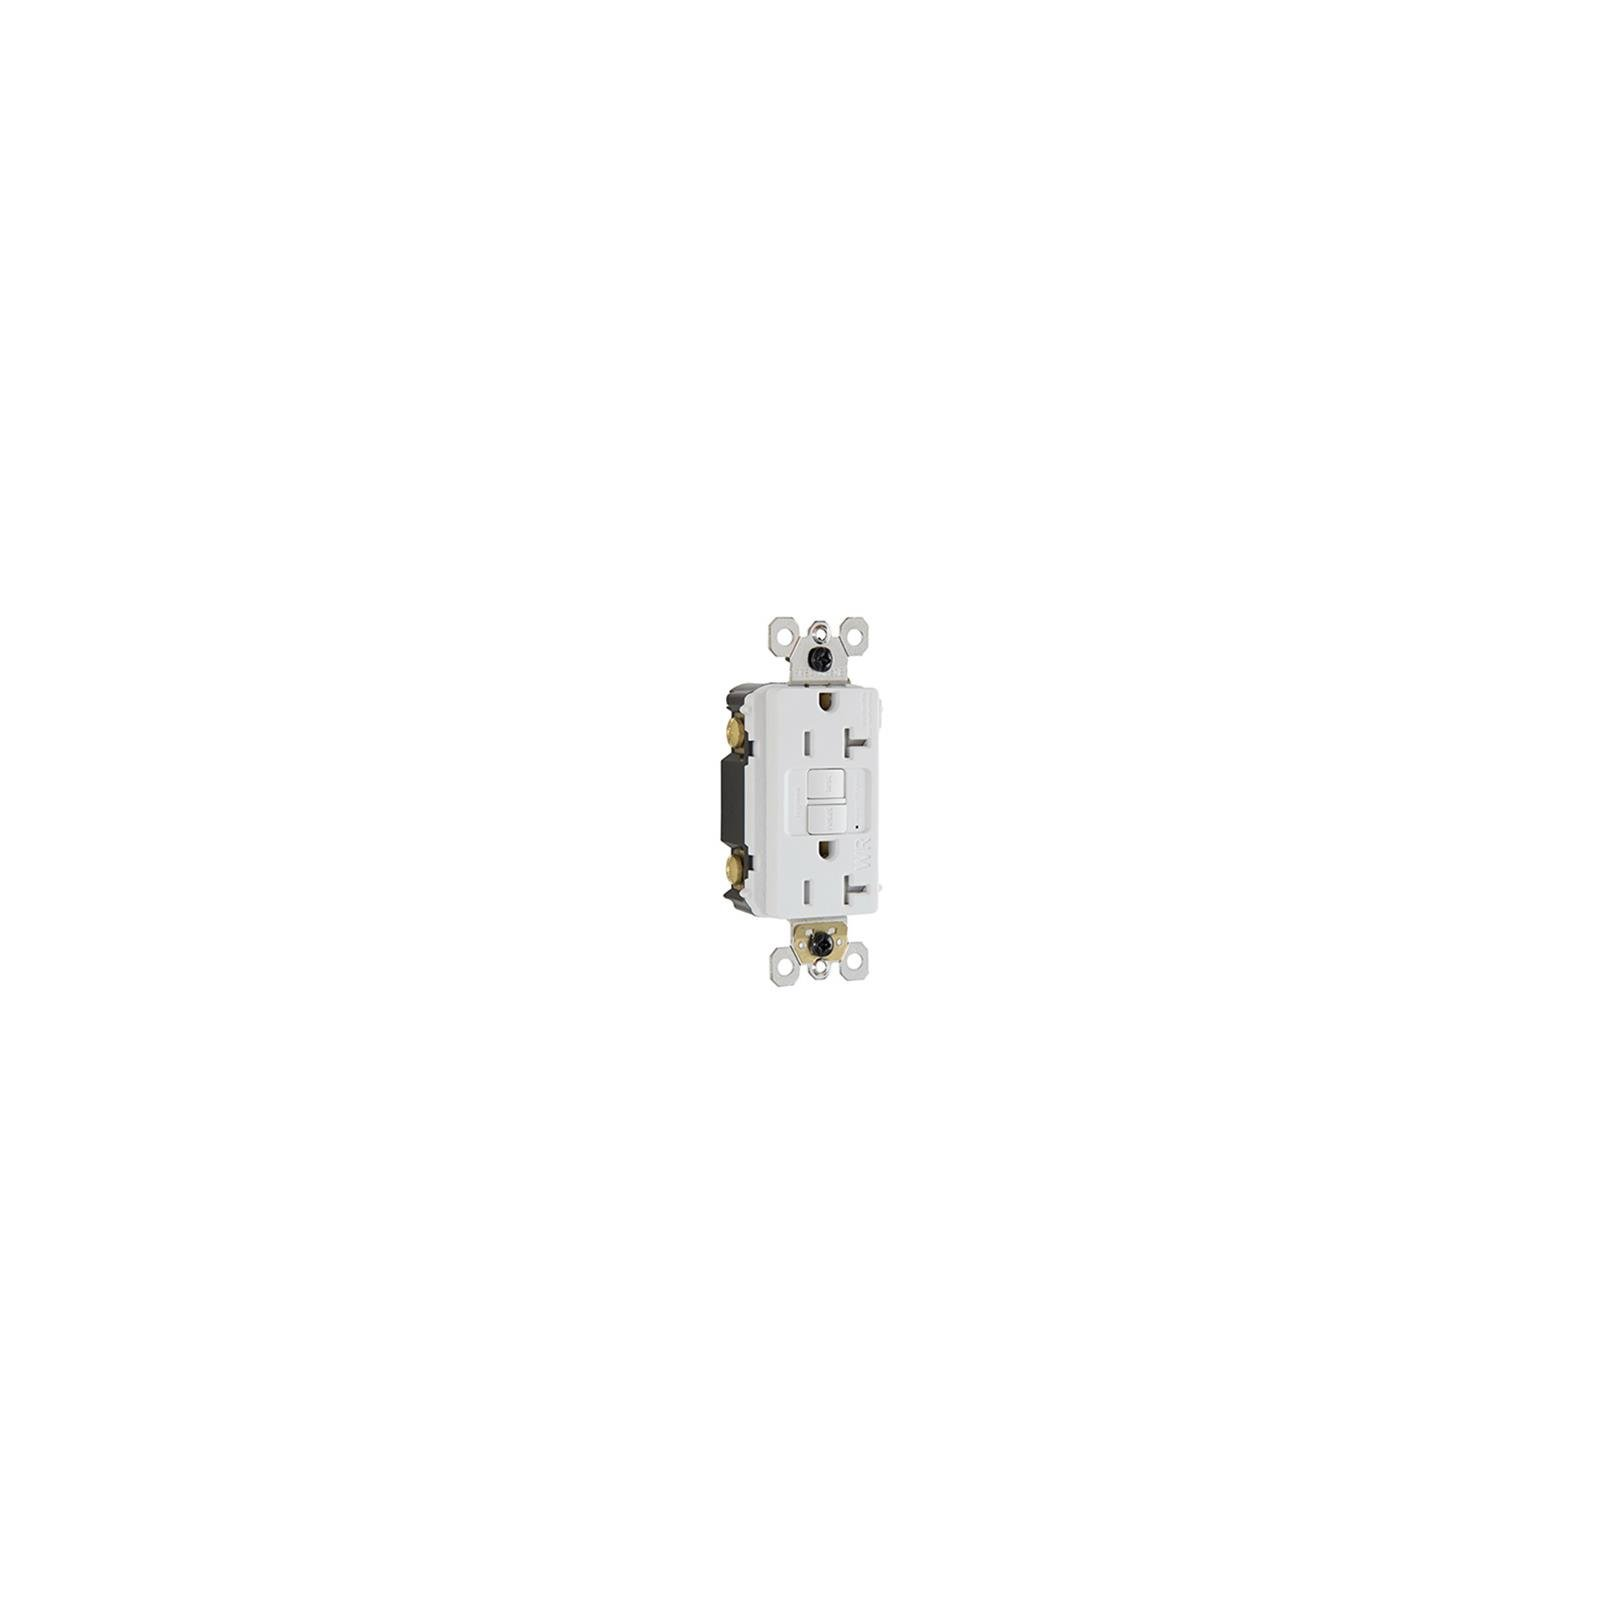 Pass & Seymour 2097TRWRWCCD4 Weather Tamper-Resistant 20 Amp Self-Test GFCI Outlet, White